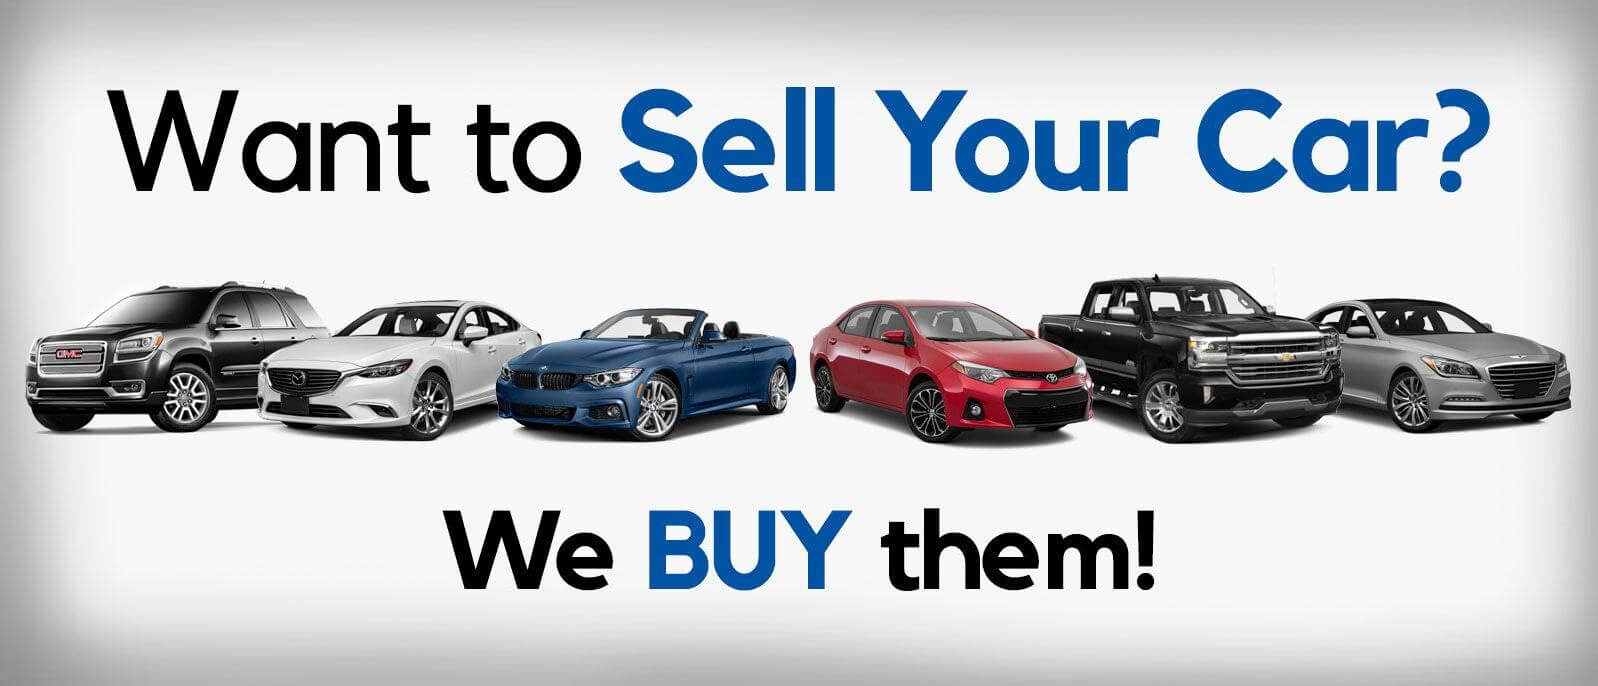 We'll buy your car even if you do not purchase from us